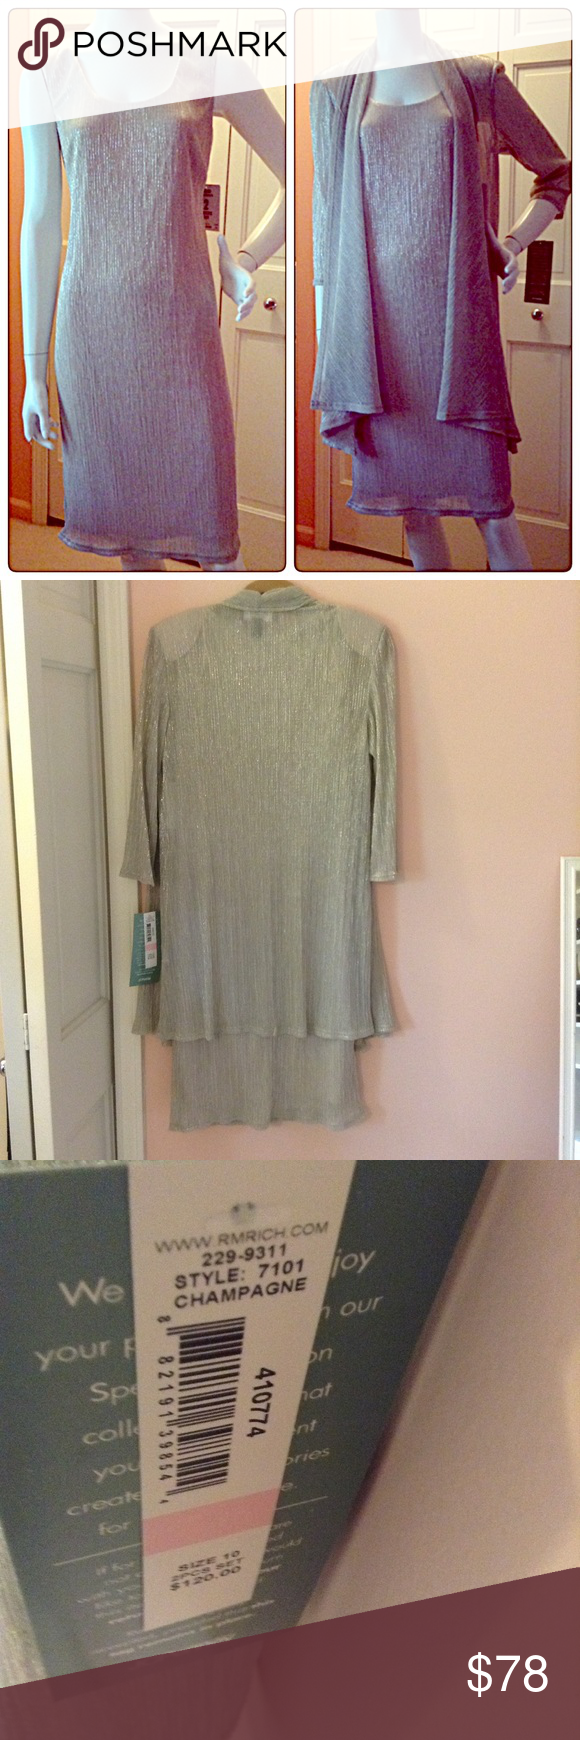 Perfect for the holidays! Never worn - still has tags - originally $120. - silver elegant sheath dress with jacket - perfect for any holiday party.  Easy to wear, comfortable, with a little stretch.  Gorgeous! Dresses Midi